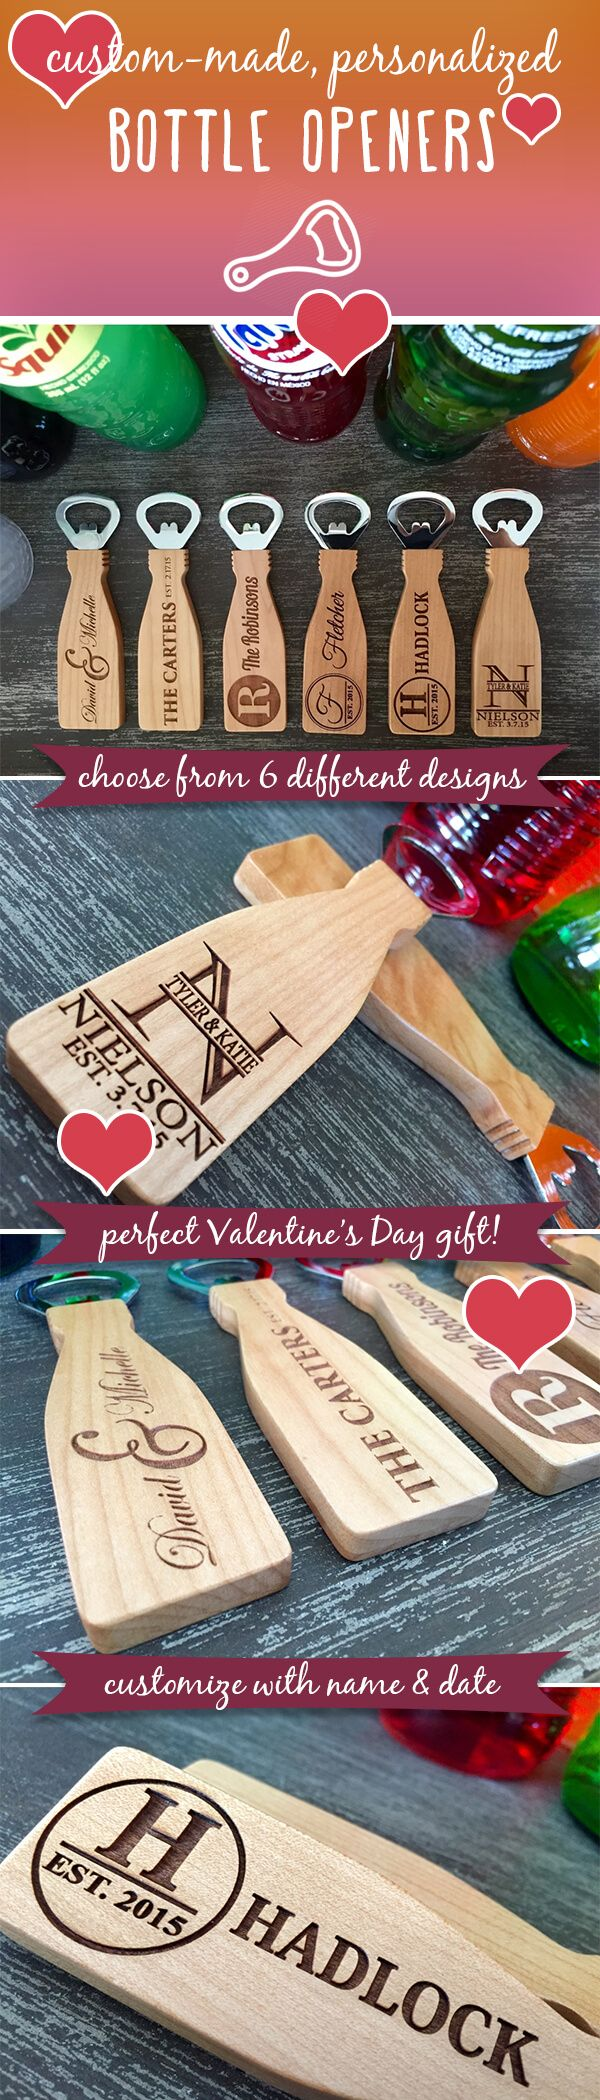 Looking for the perfect gift for your Valentine? These incredible, personalized bottle openers make the perfect gift and are ON SALE for a fantastic price! Made from 100 percent maple, they are highly durable and will look fantastic displayed on any magnetized surface! Simply provide us with the names and dates desired and we will do the rest!